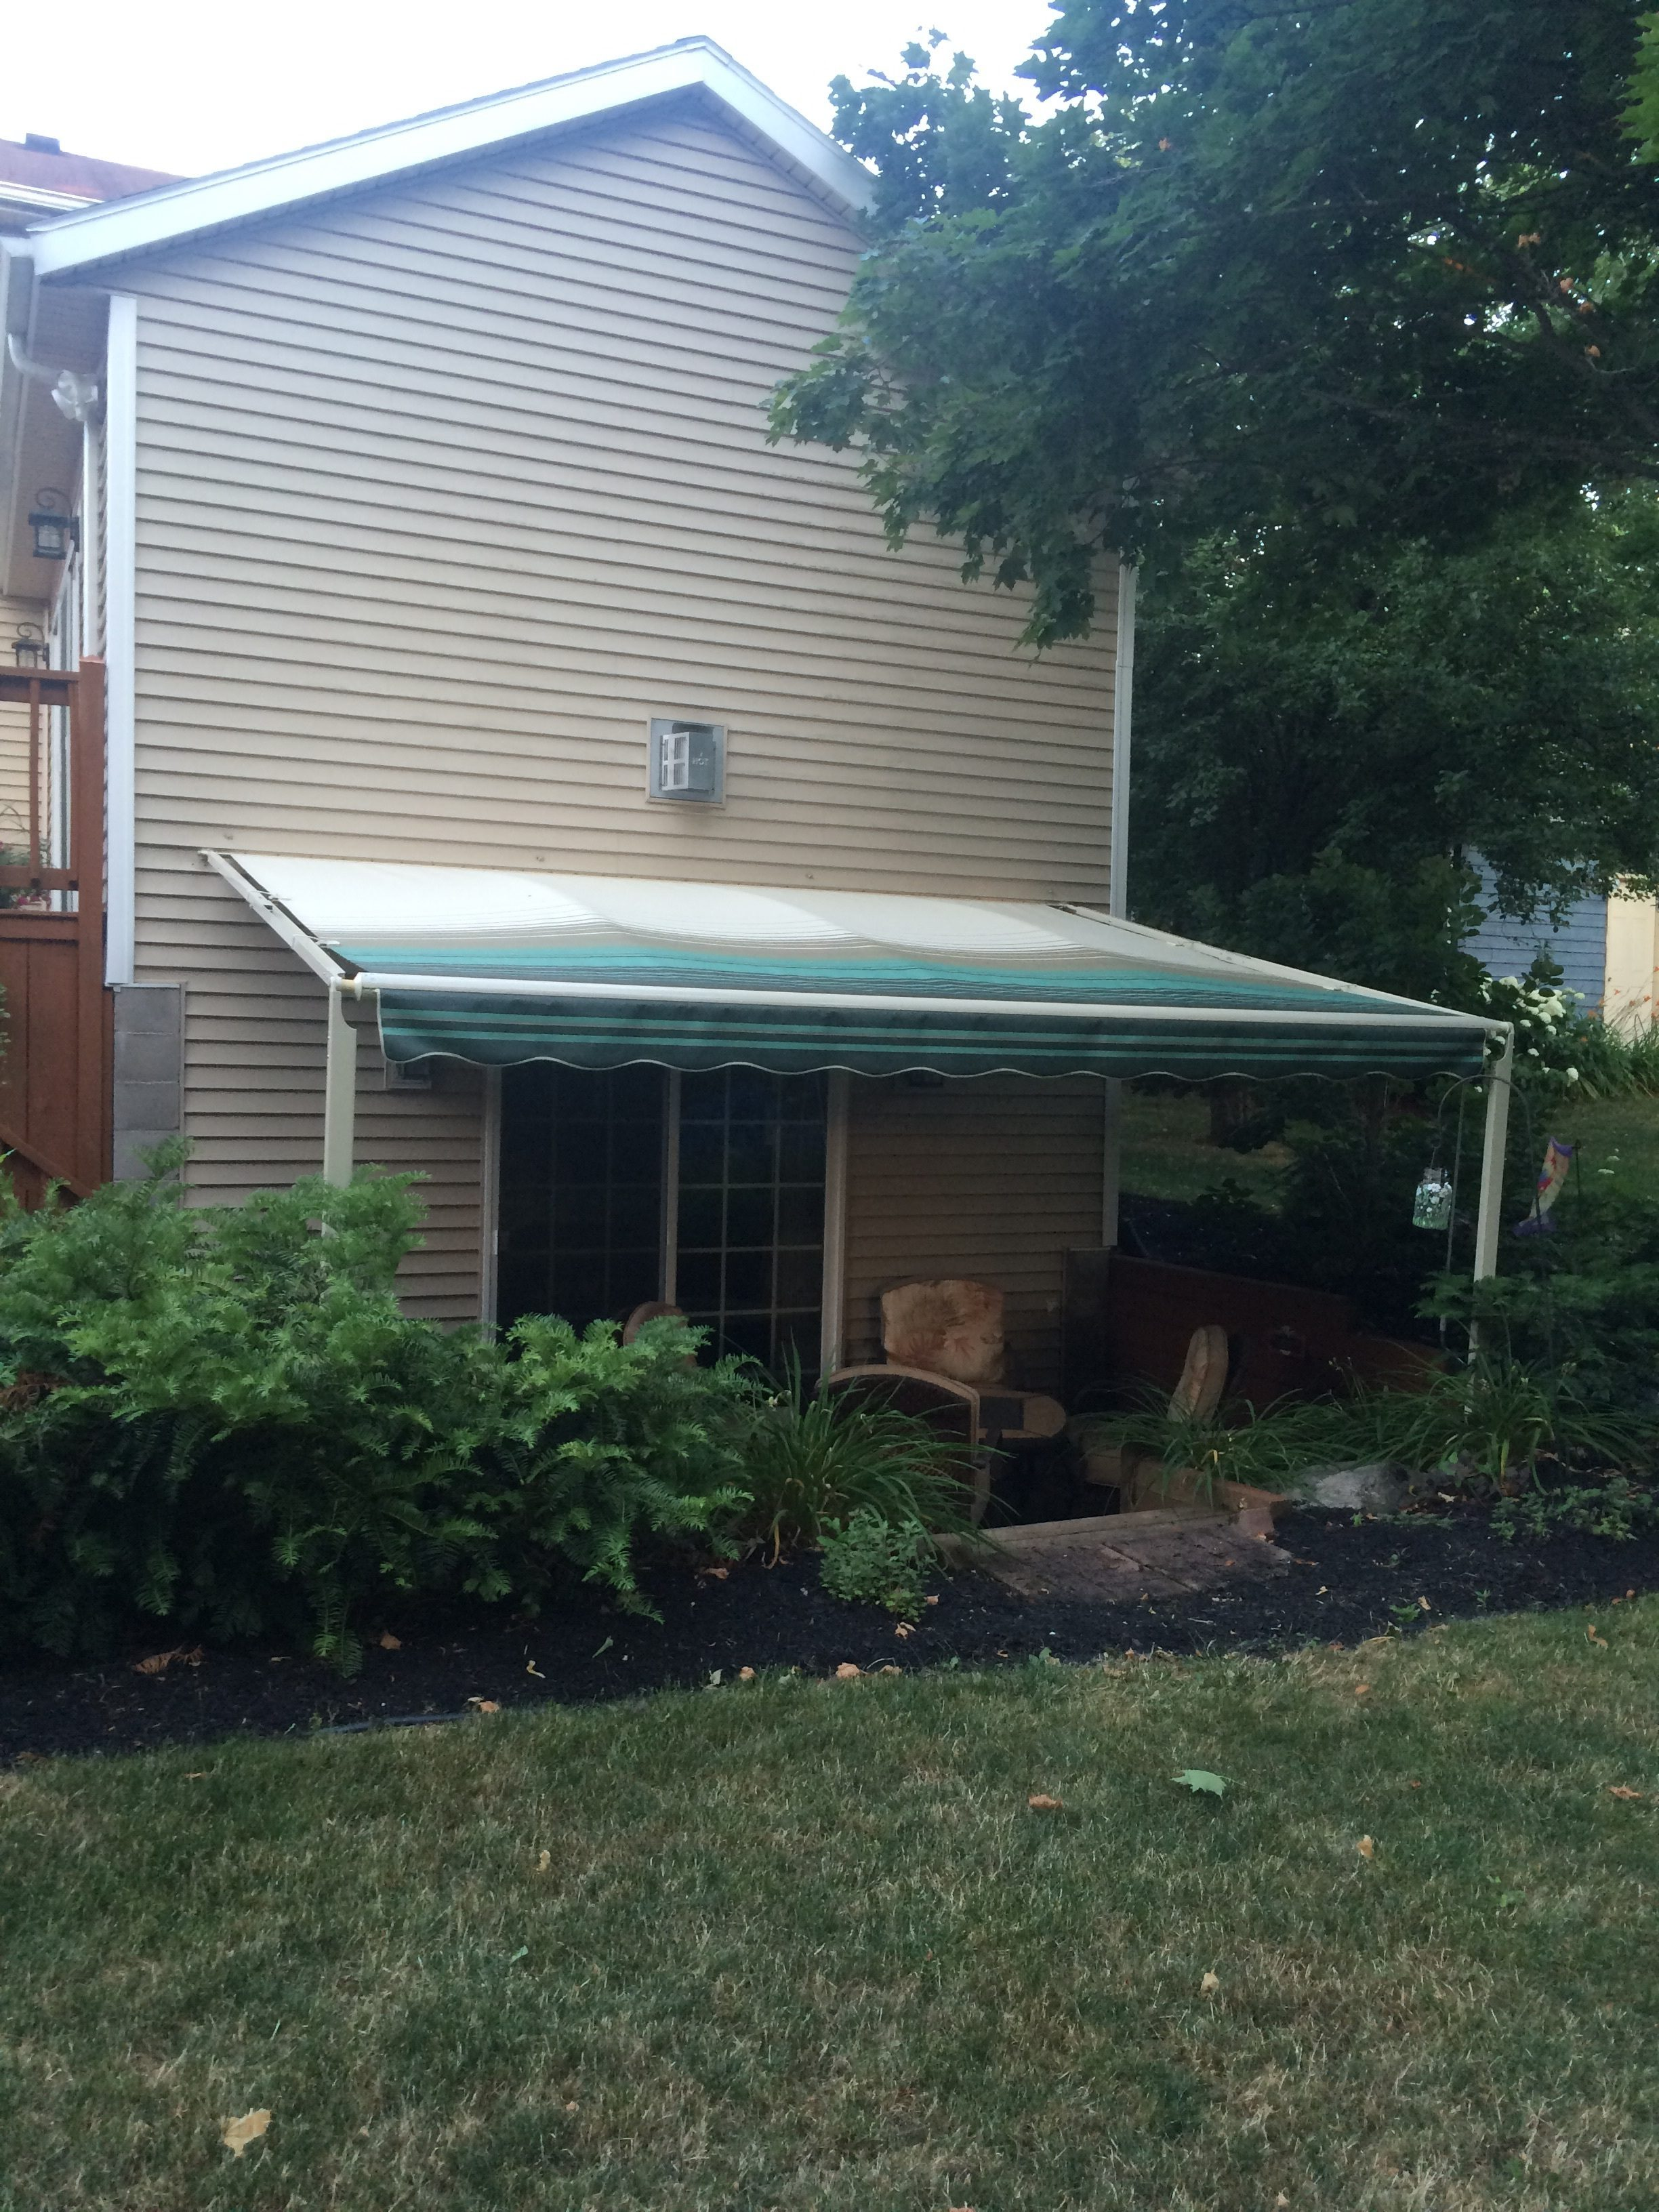 Top 372 Reviews And Complaints About Sunsetter Awnings